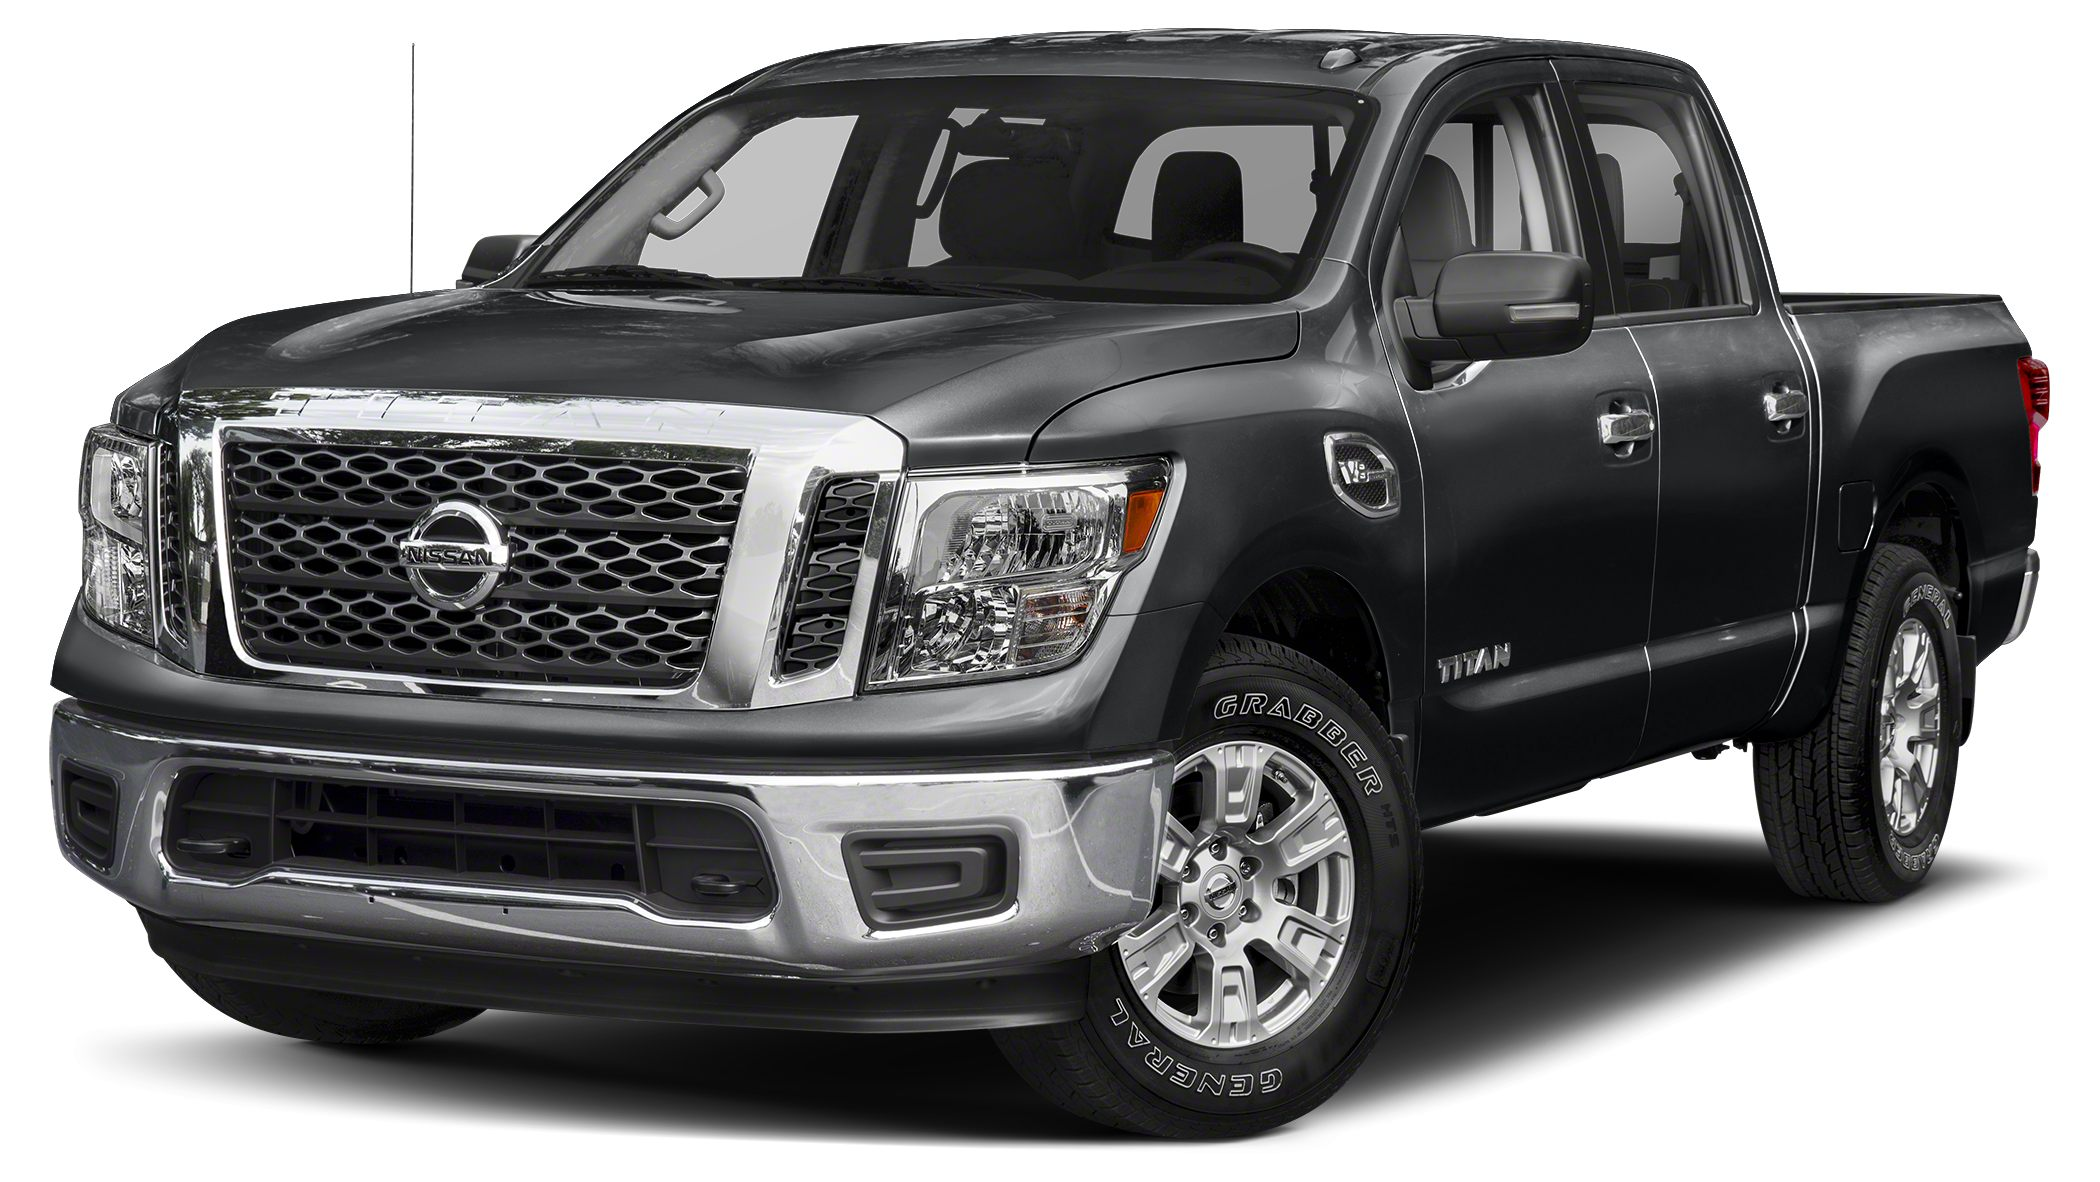 2017 Nissan Titan SV New Arrival Bluetooth This 2017 Nissan Titan SV is Magnetic Black This Ni